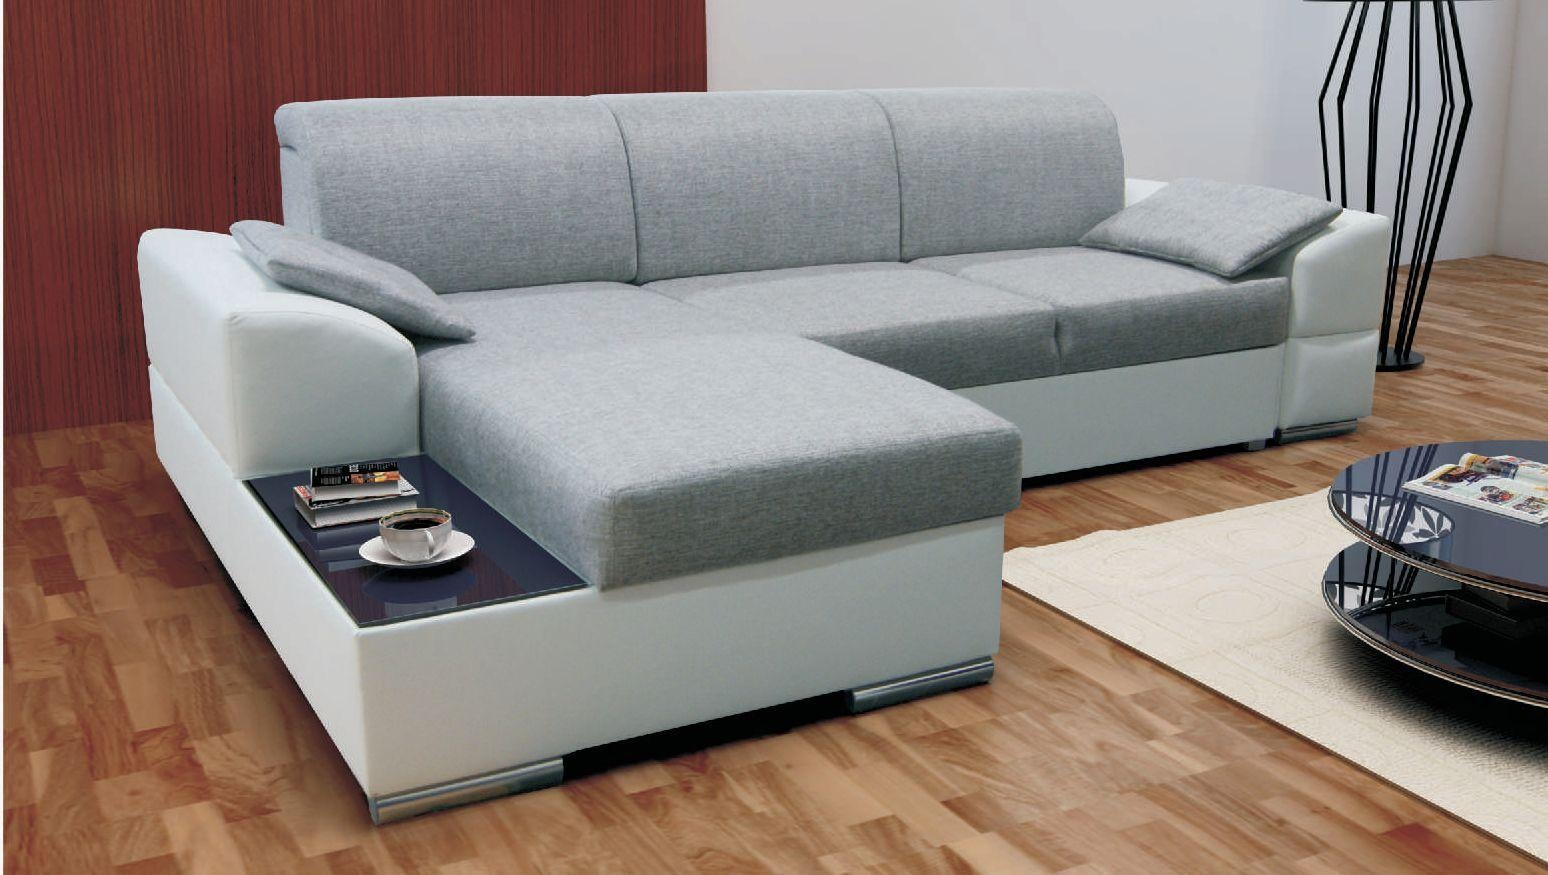 corner sofa bed skiftebo dark grey how to reupholster a sectional 20 ideas of ikea with storage |